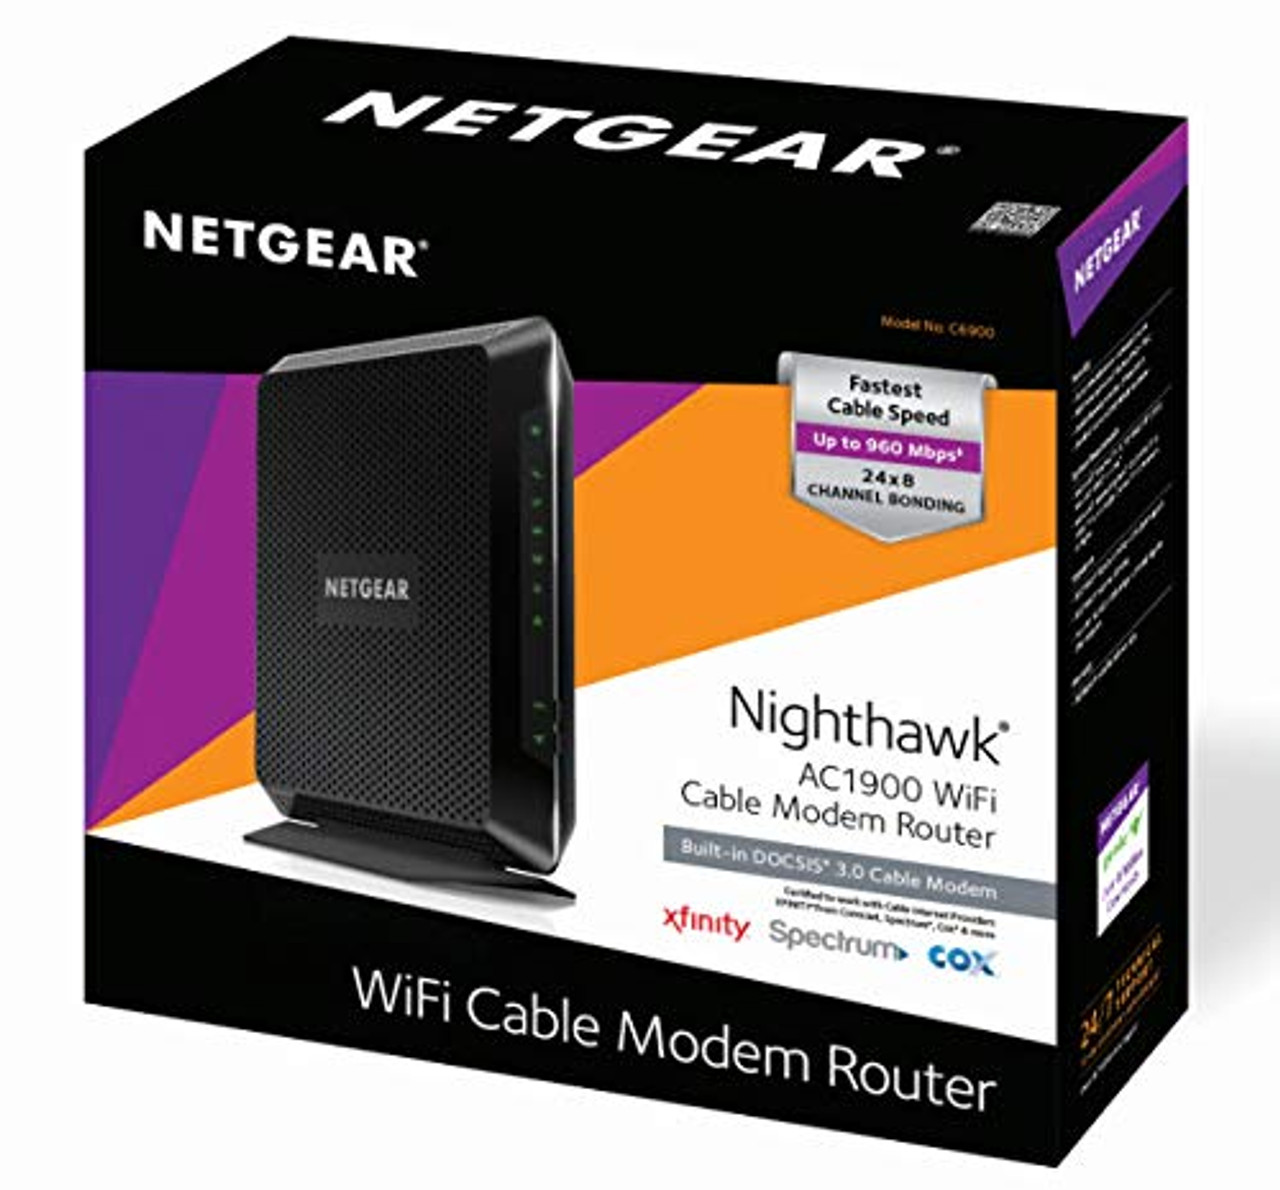 NETGEAR Nighthawk C6900-100NAR Dual Band AC1900 Cable Modem Router – Certified Refurbished